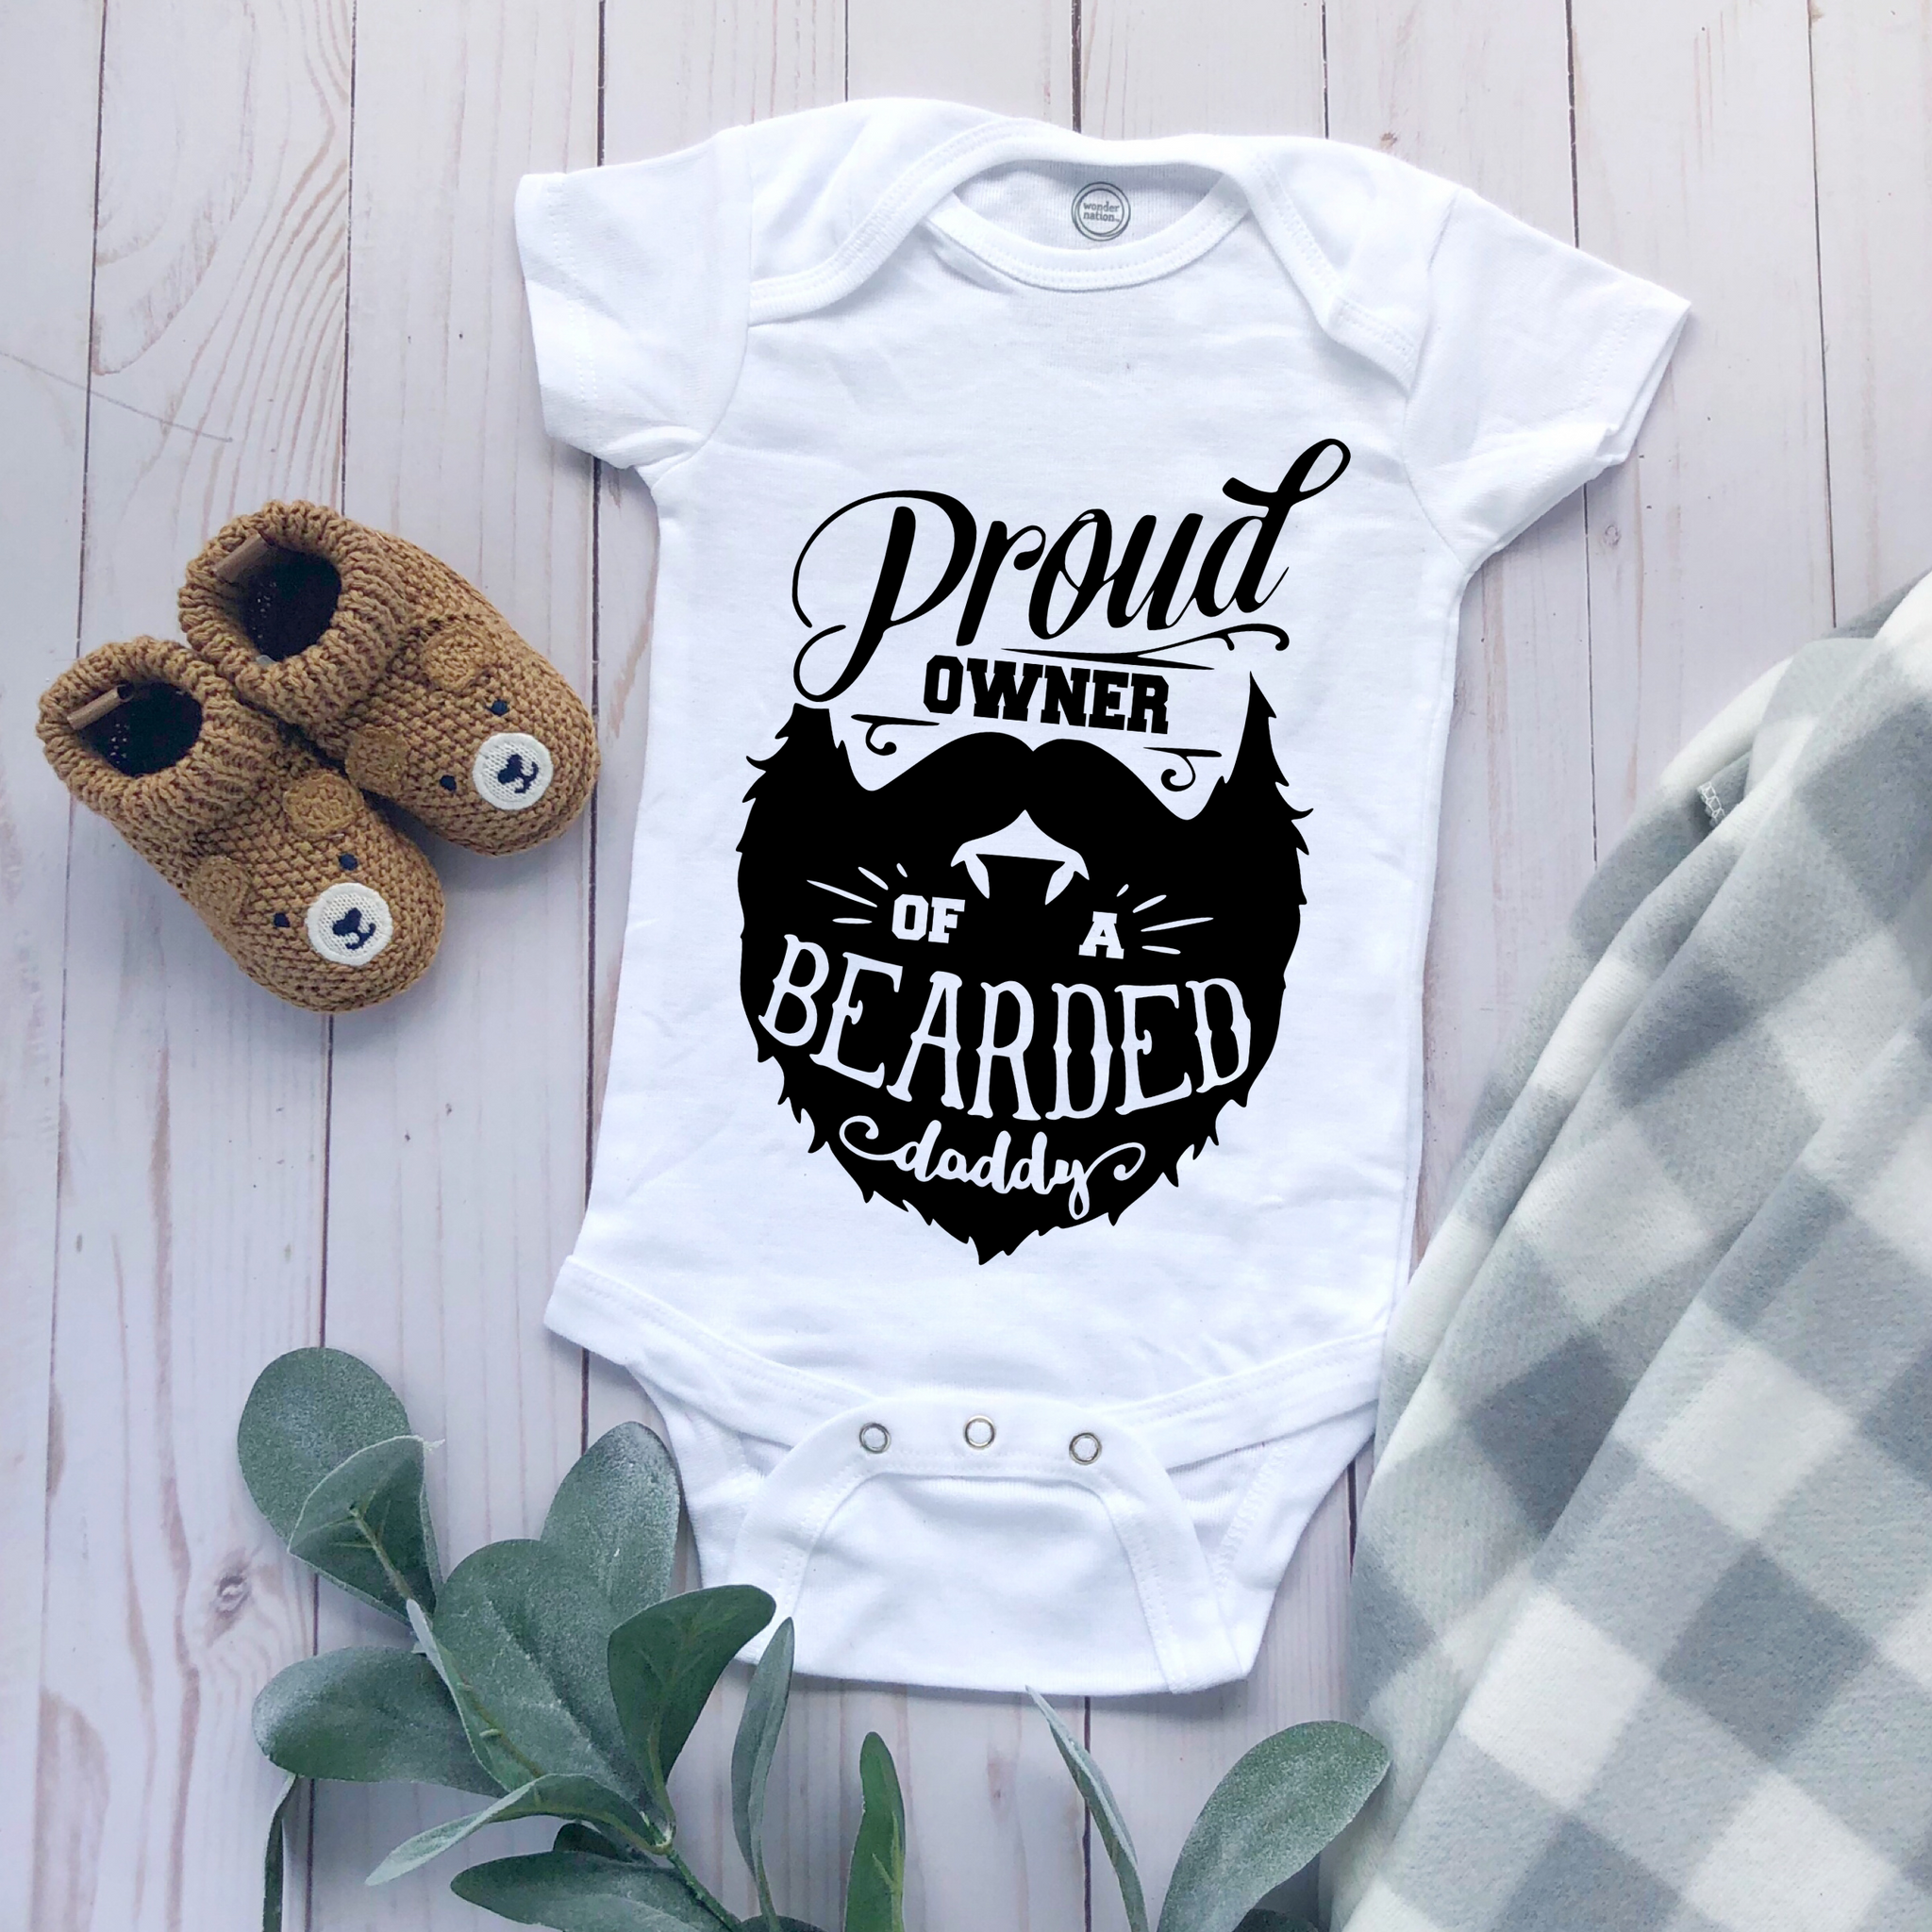 """Proud Owner of a Bearded Daddy"" - Baby Bodysuit"